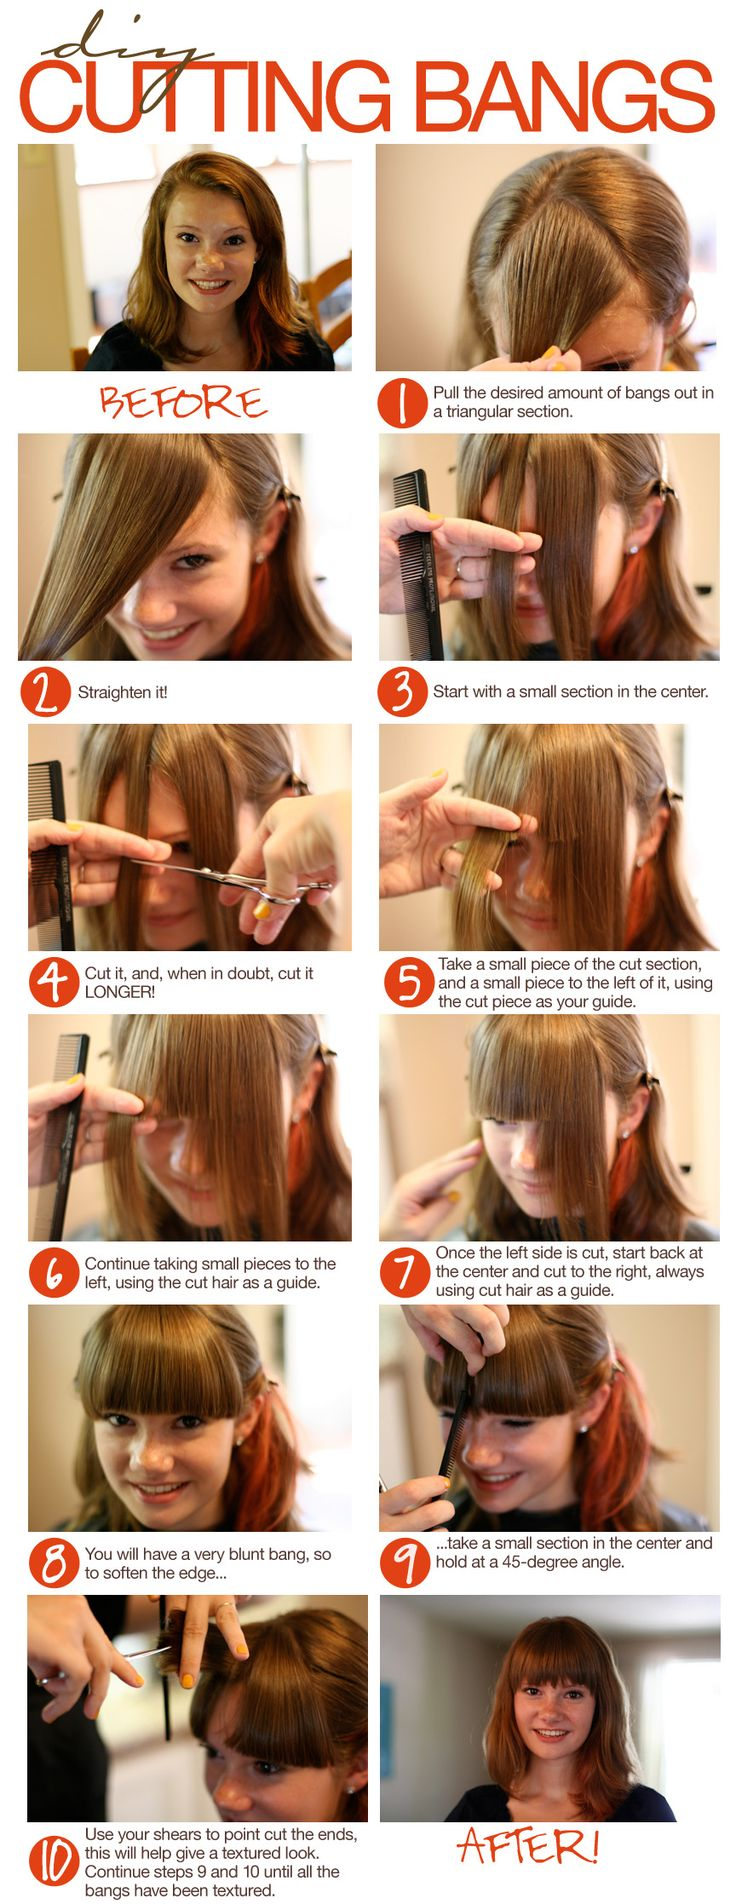 25 unique how to cut fringe ideas on pinterest how to cut bangs diy bangs cut hair and beauty tutorials urmus Image collections